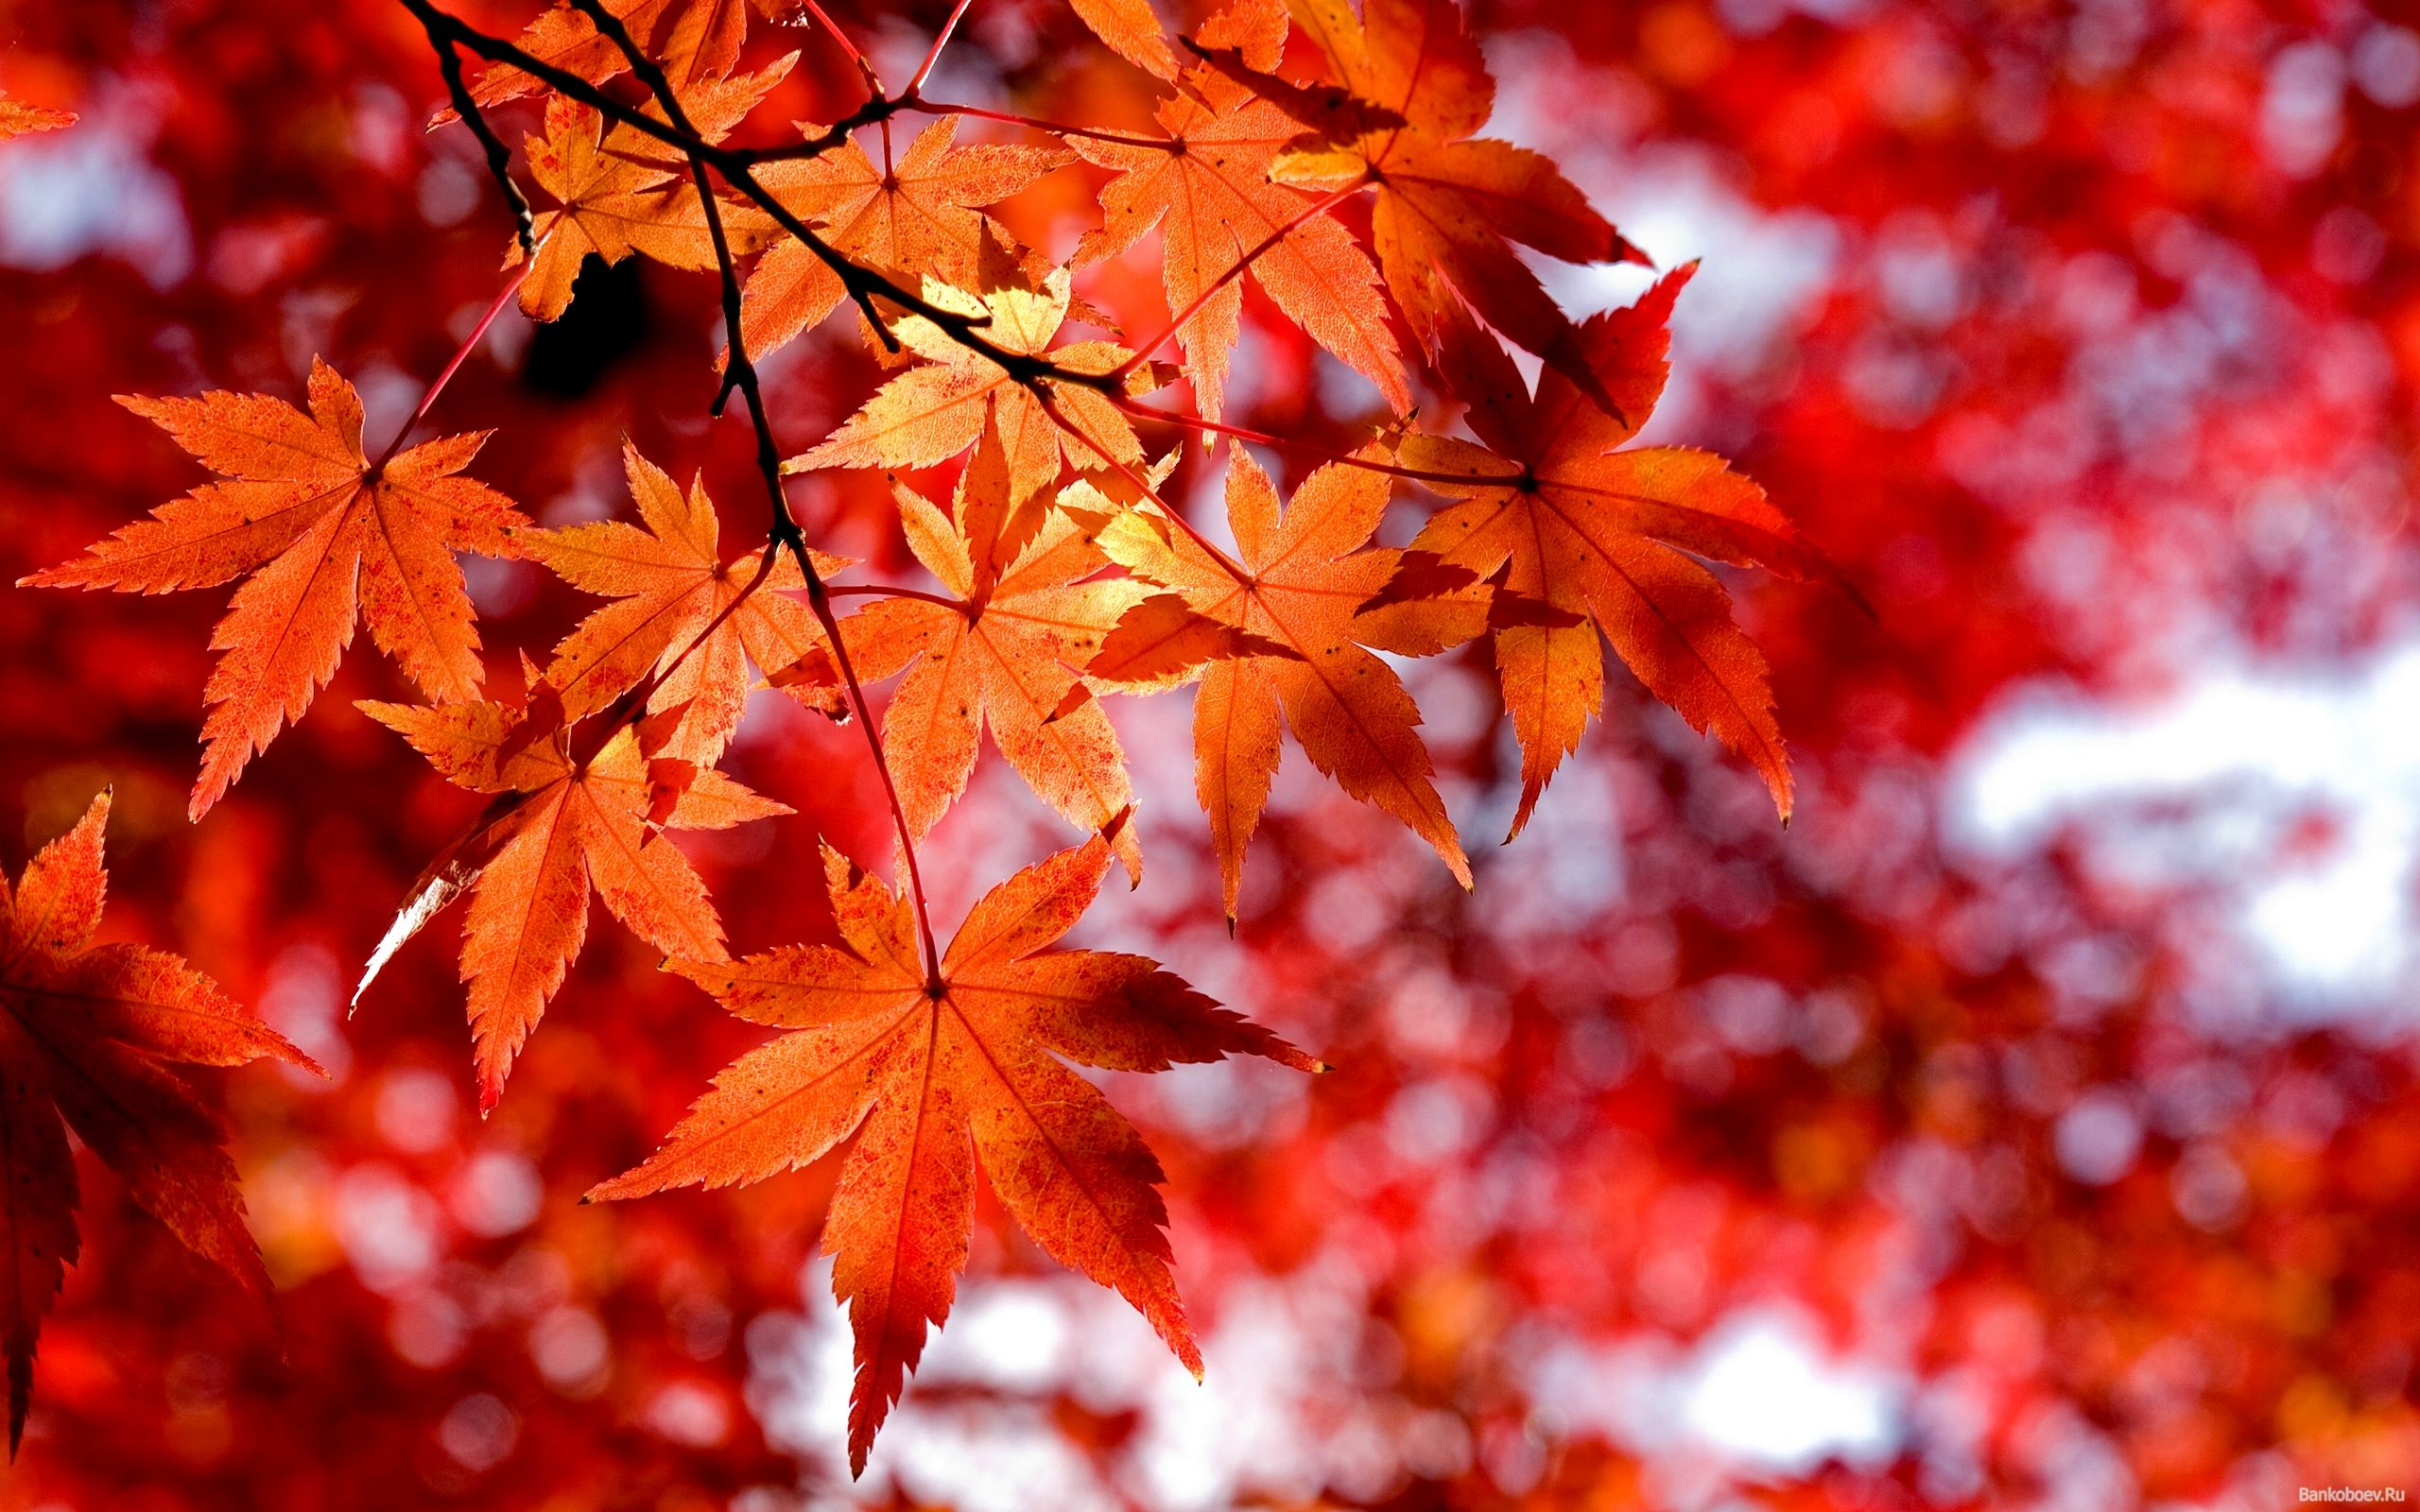 El Símbolo Nacional De Canadá Es La Hoja De Arce Autumn Leaves Wallpaper Autumn Photography Red Maple Tree